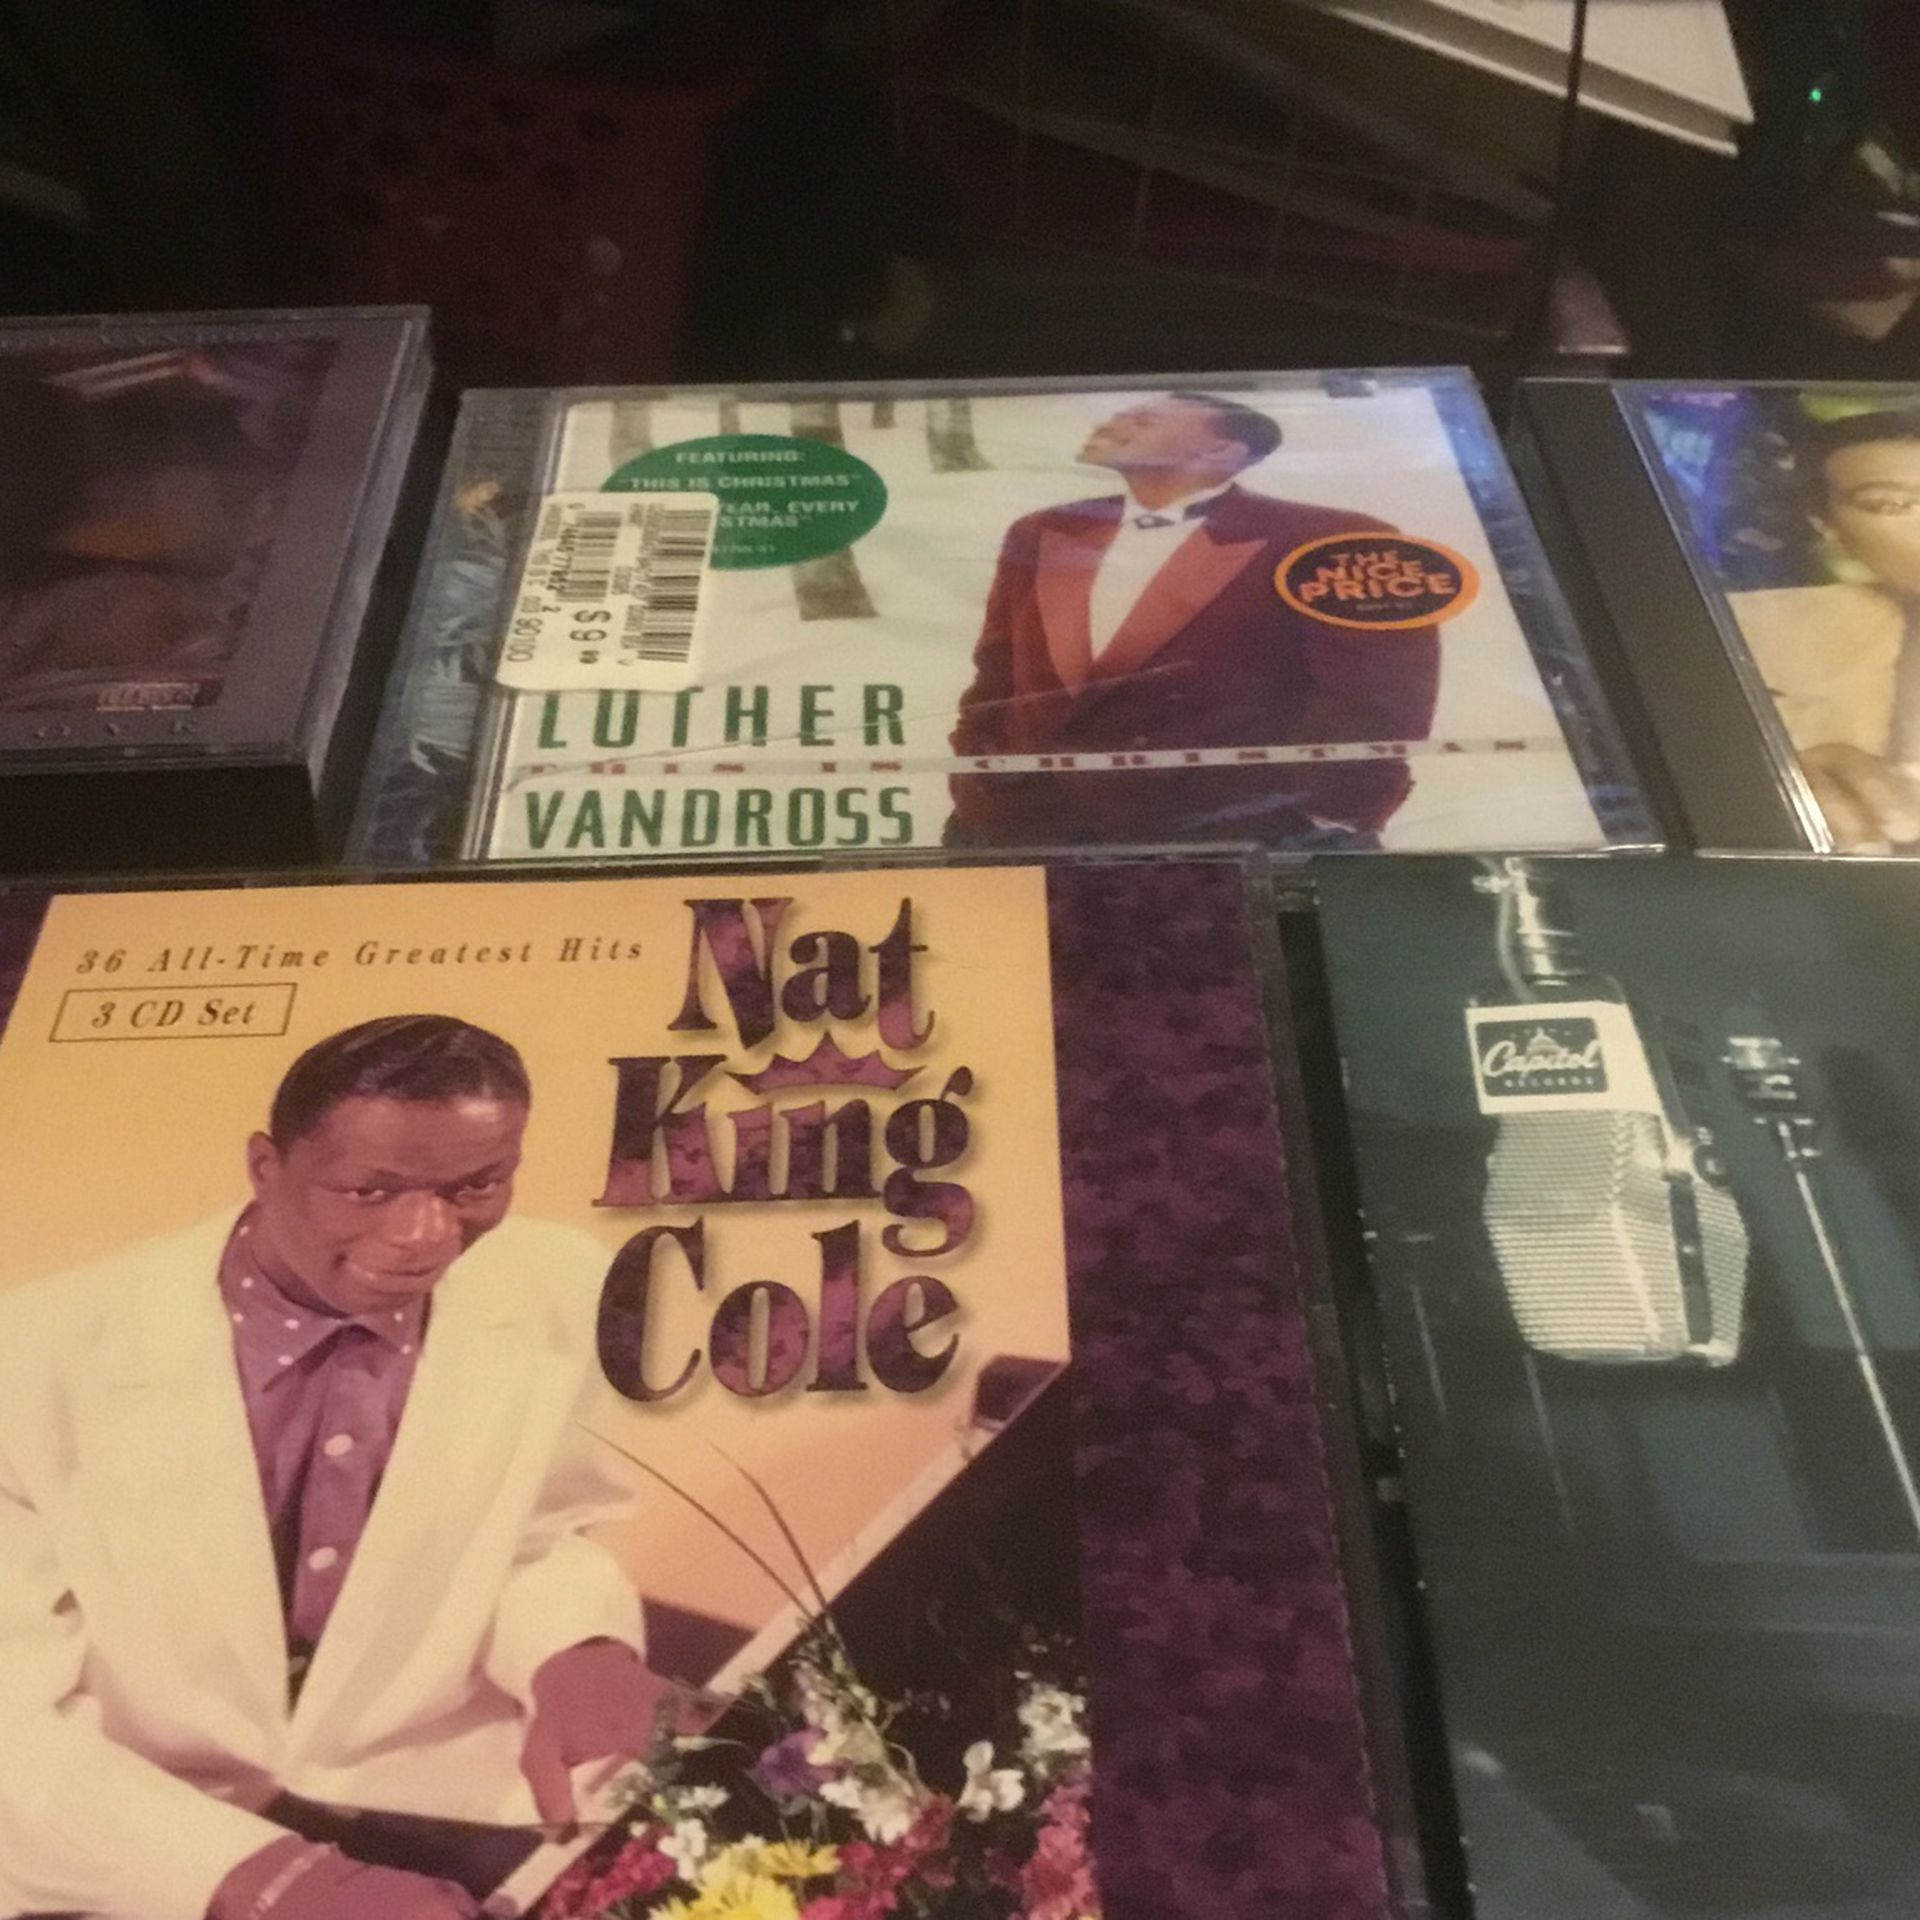 5 Cd Tape One Car settle Tape Cd Music Tape O& Luther Vandross And Nat King Cole on Sal Forjust 5.00